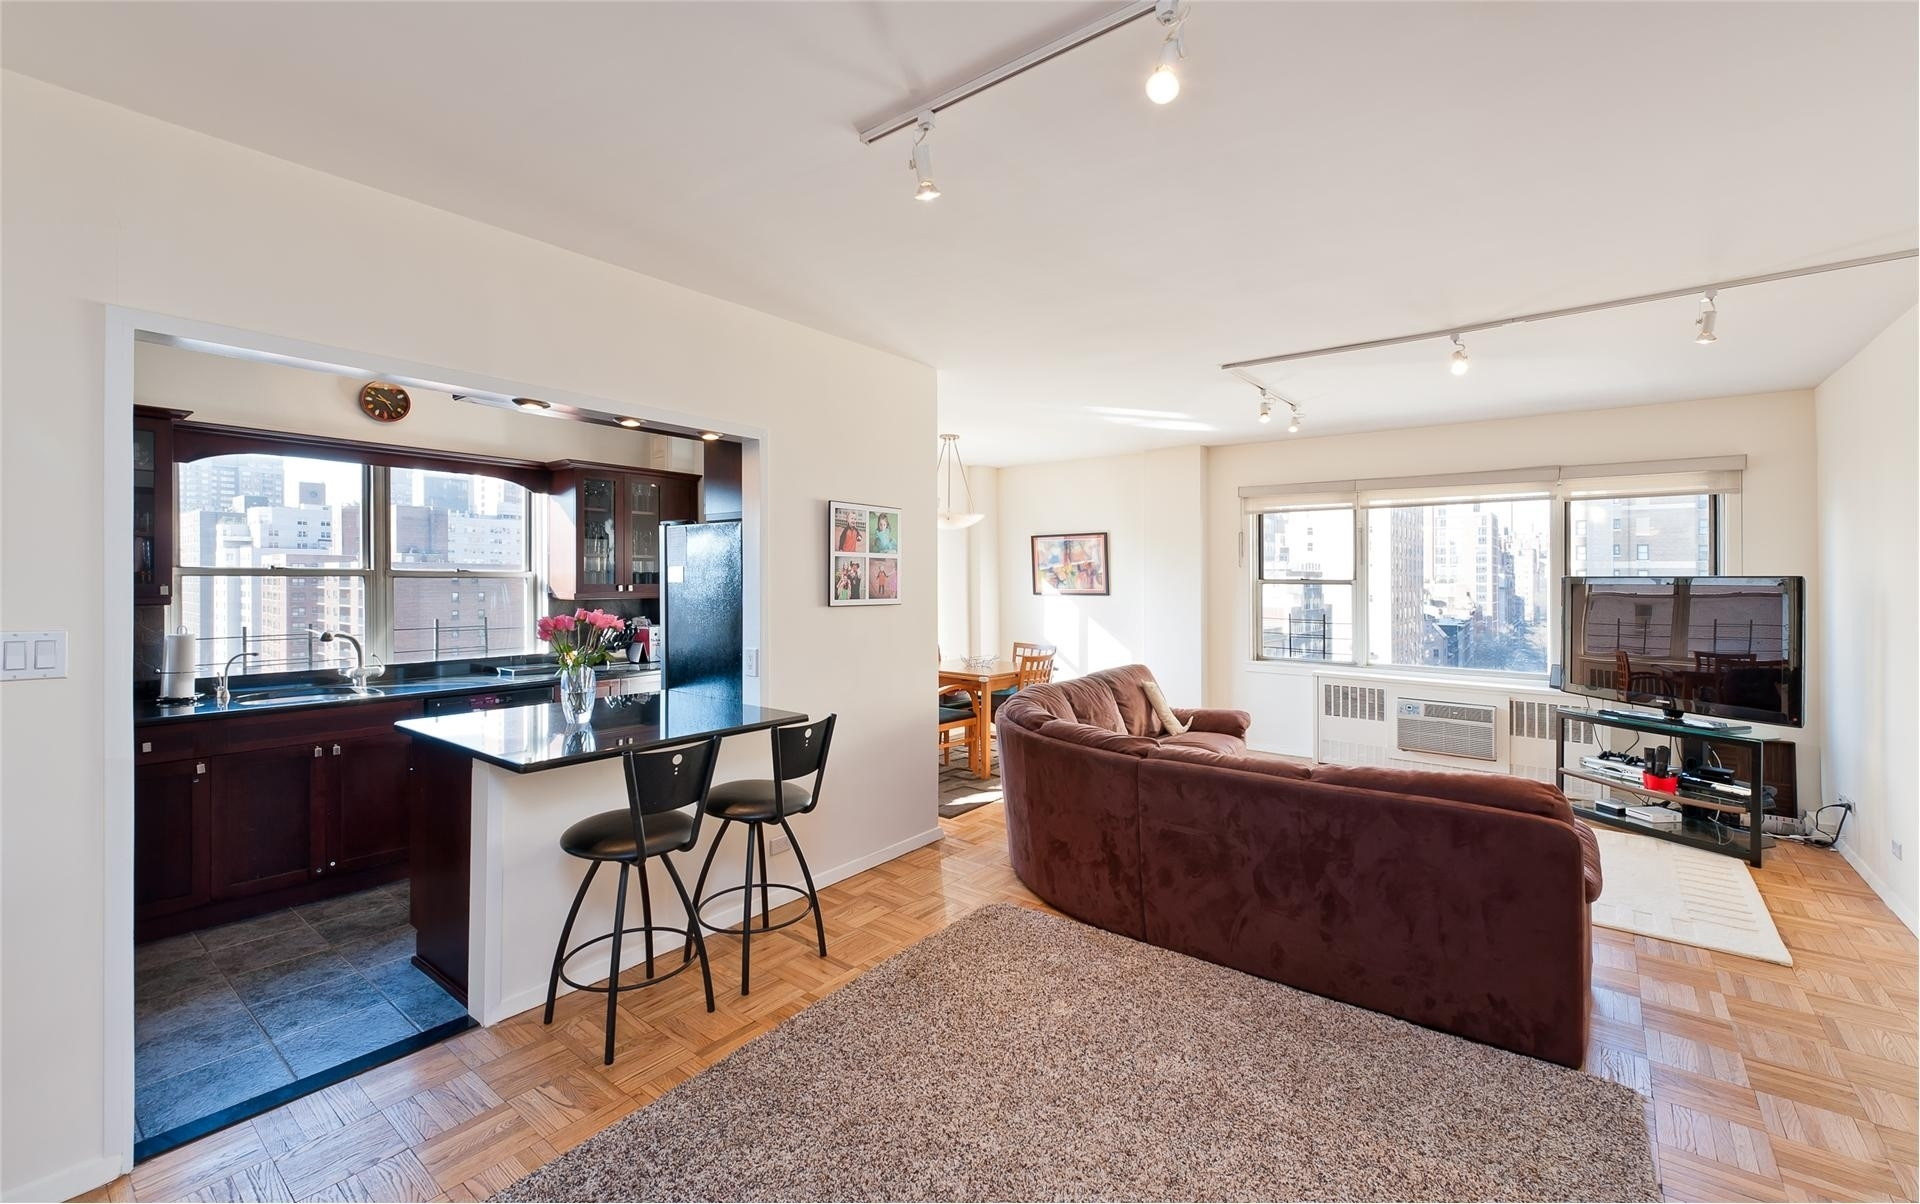 Property at 201 East 37th St, 15DE New York